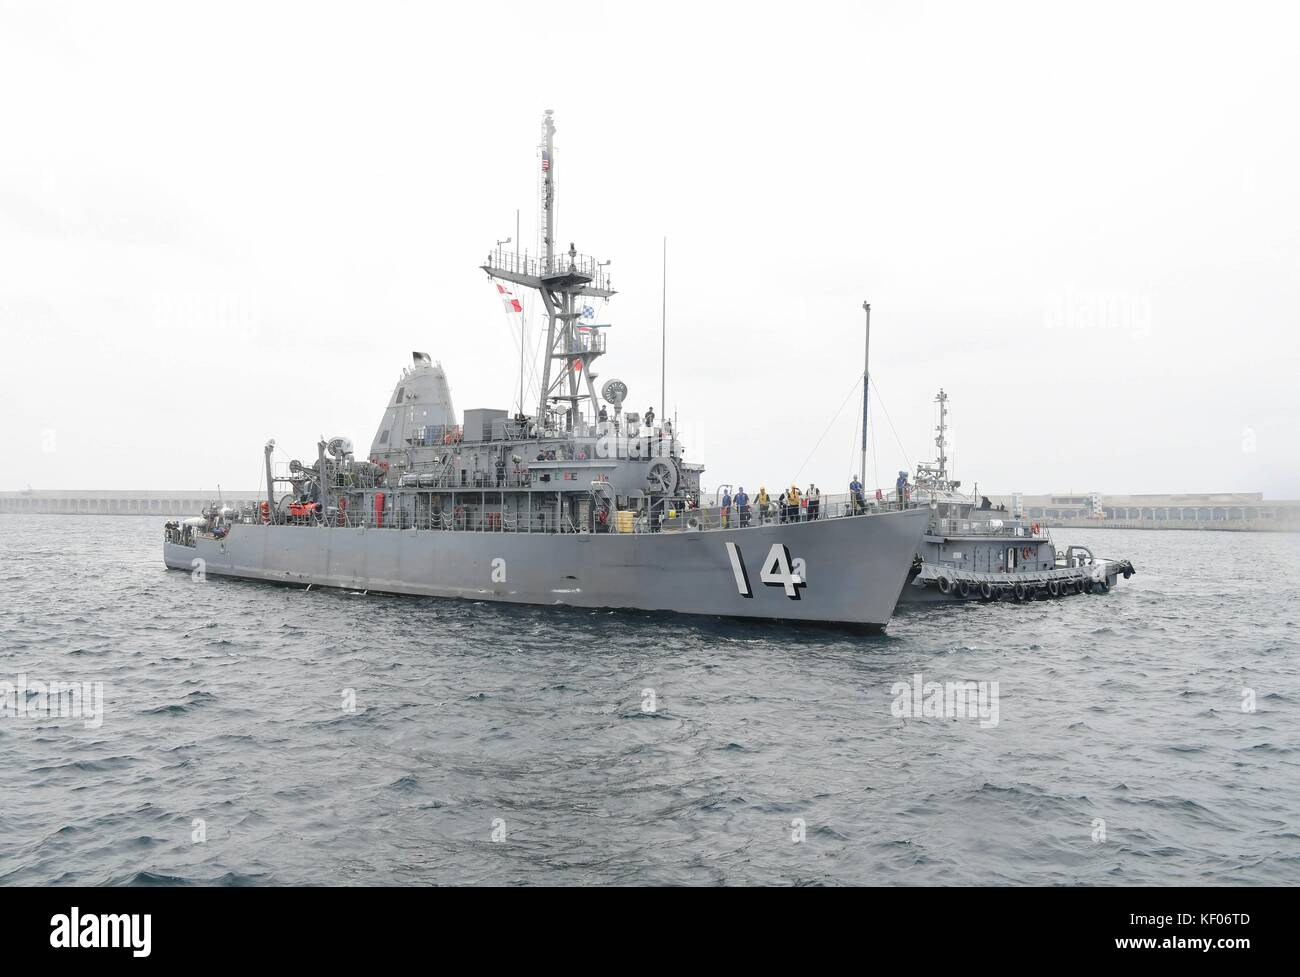 The U.S. Navy Avenger-class mine countermeasures ship USS Chief arrives at Jeju Island for a port visit September Stock Photo